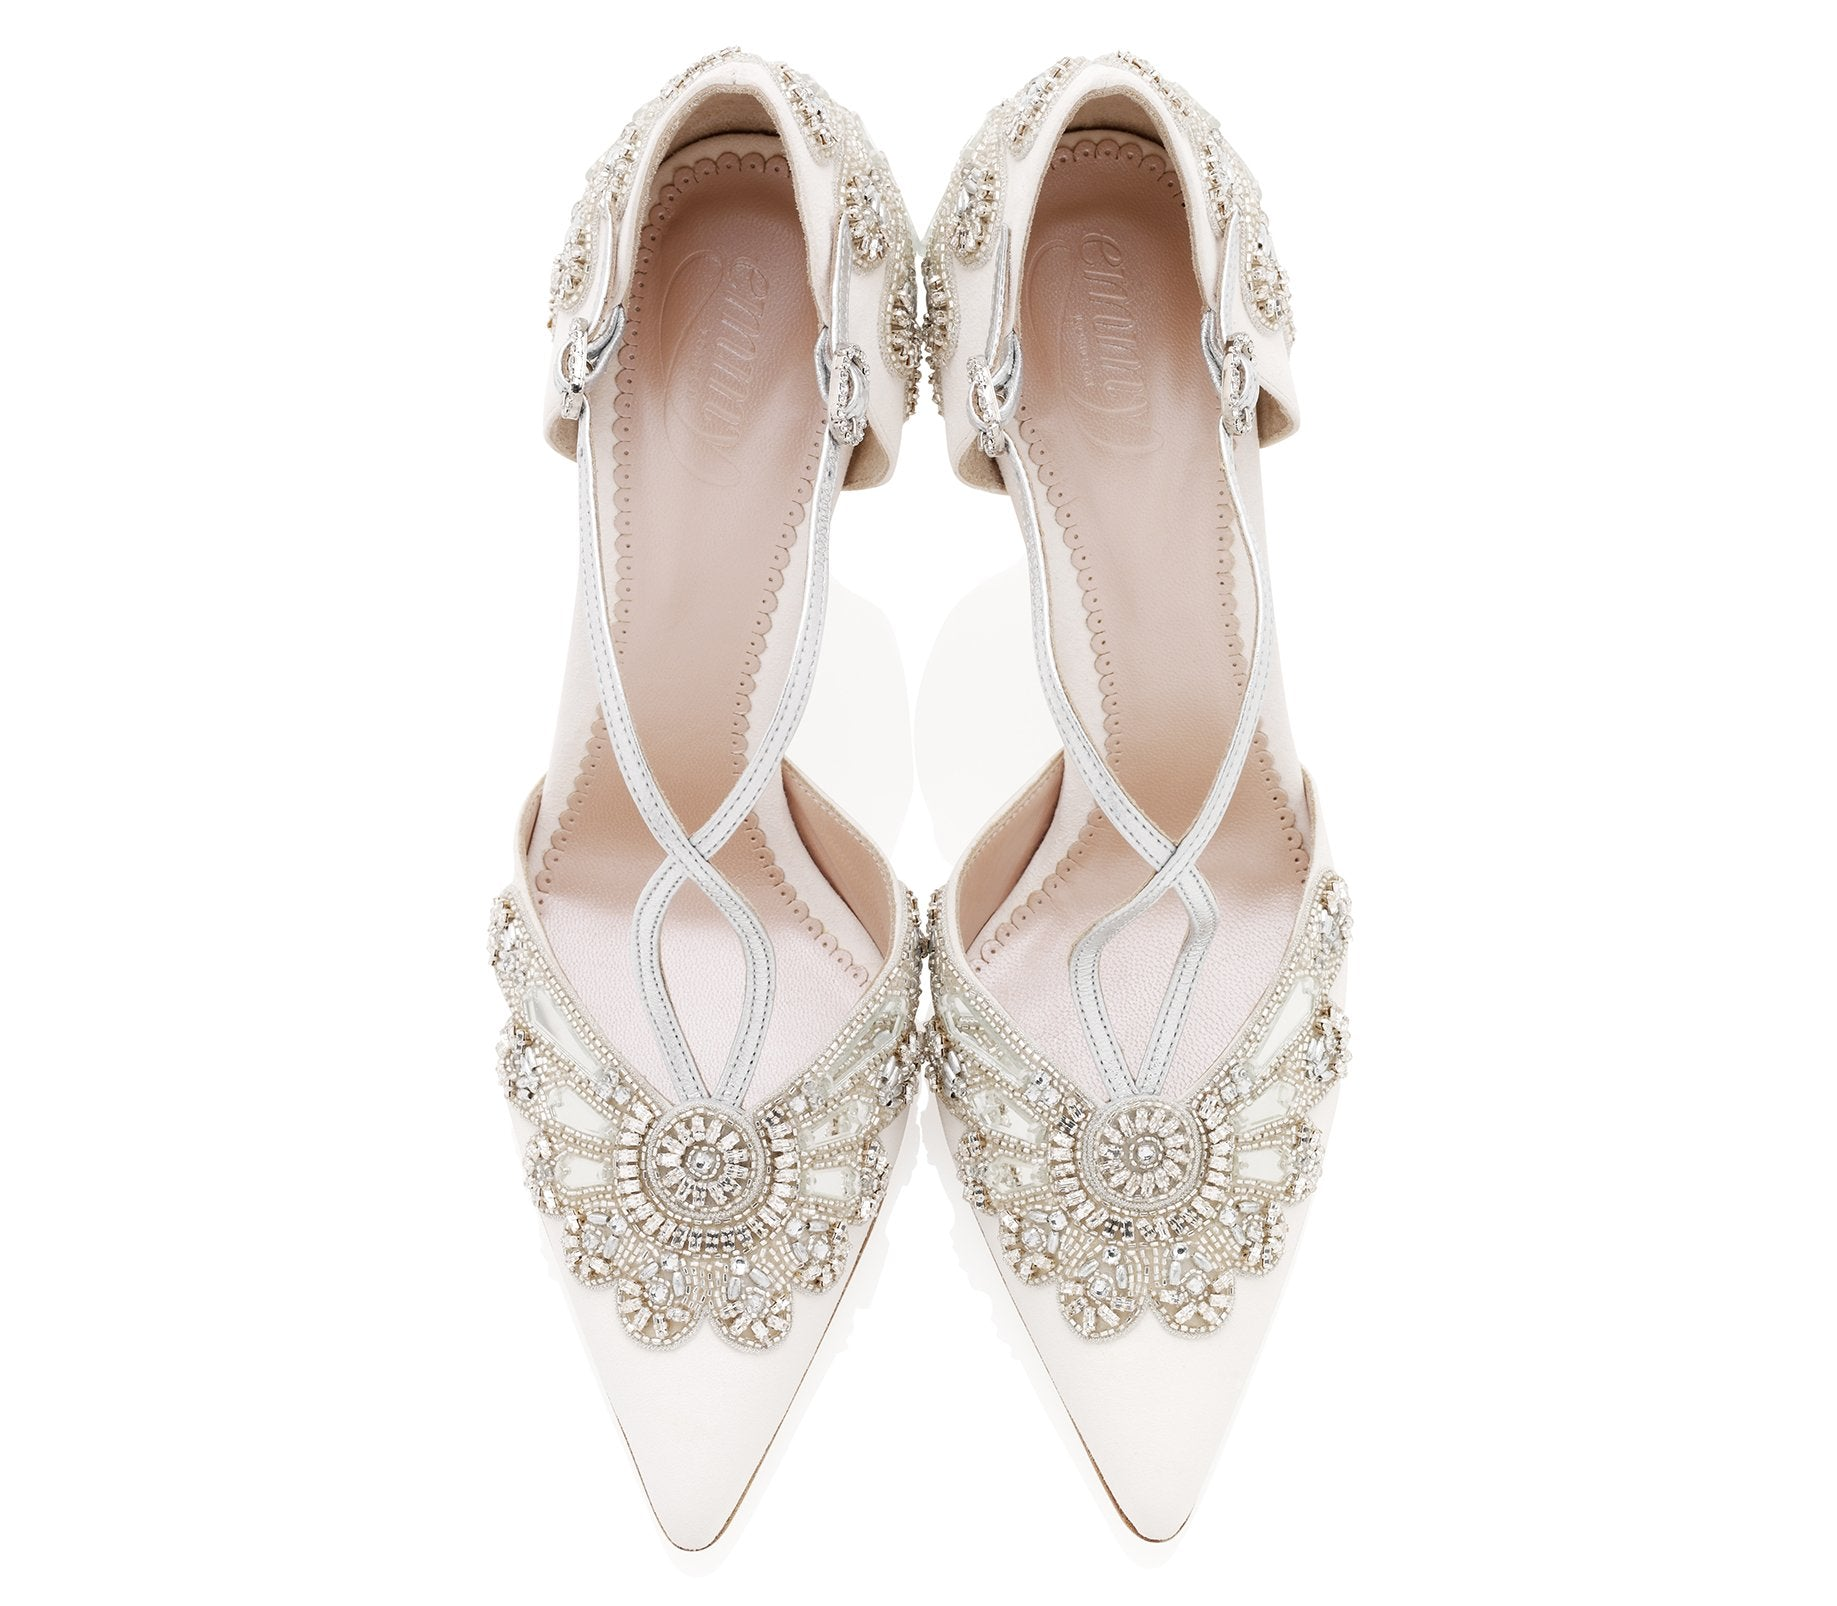 Cinderella Point Wedding Shoes By Emmy London Overhead